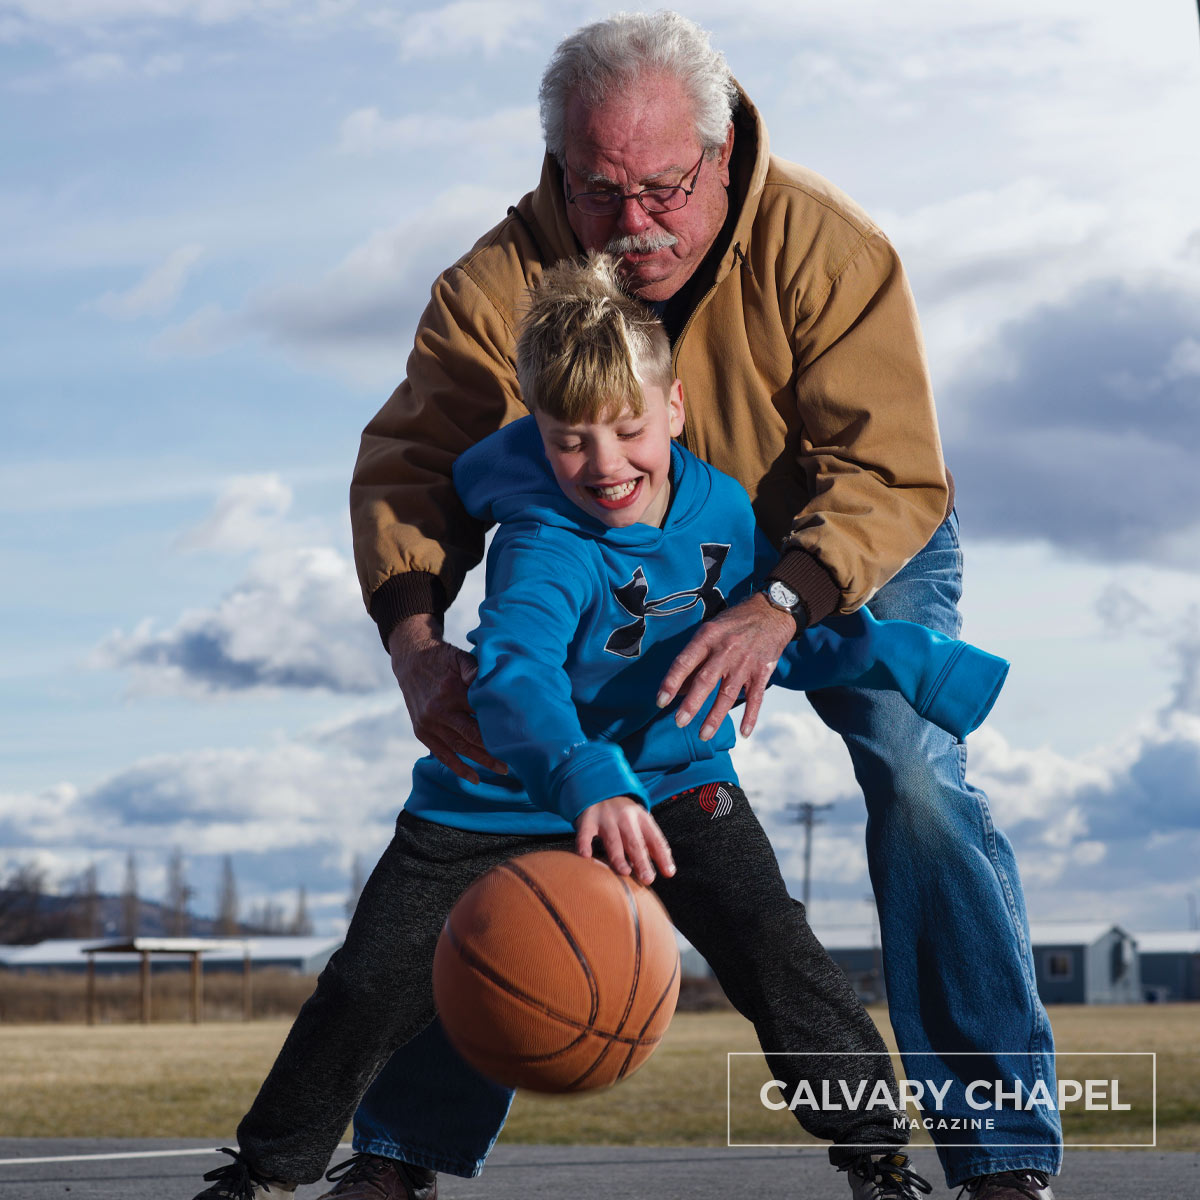 Man and his grandson play with a basketball